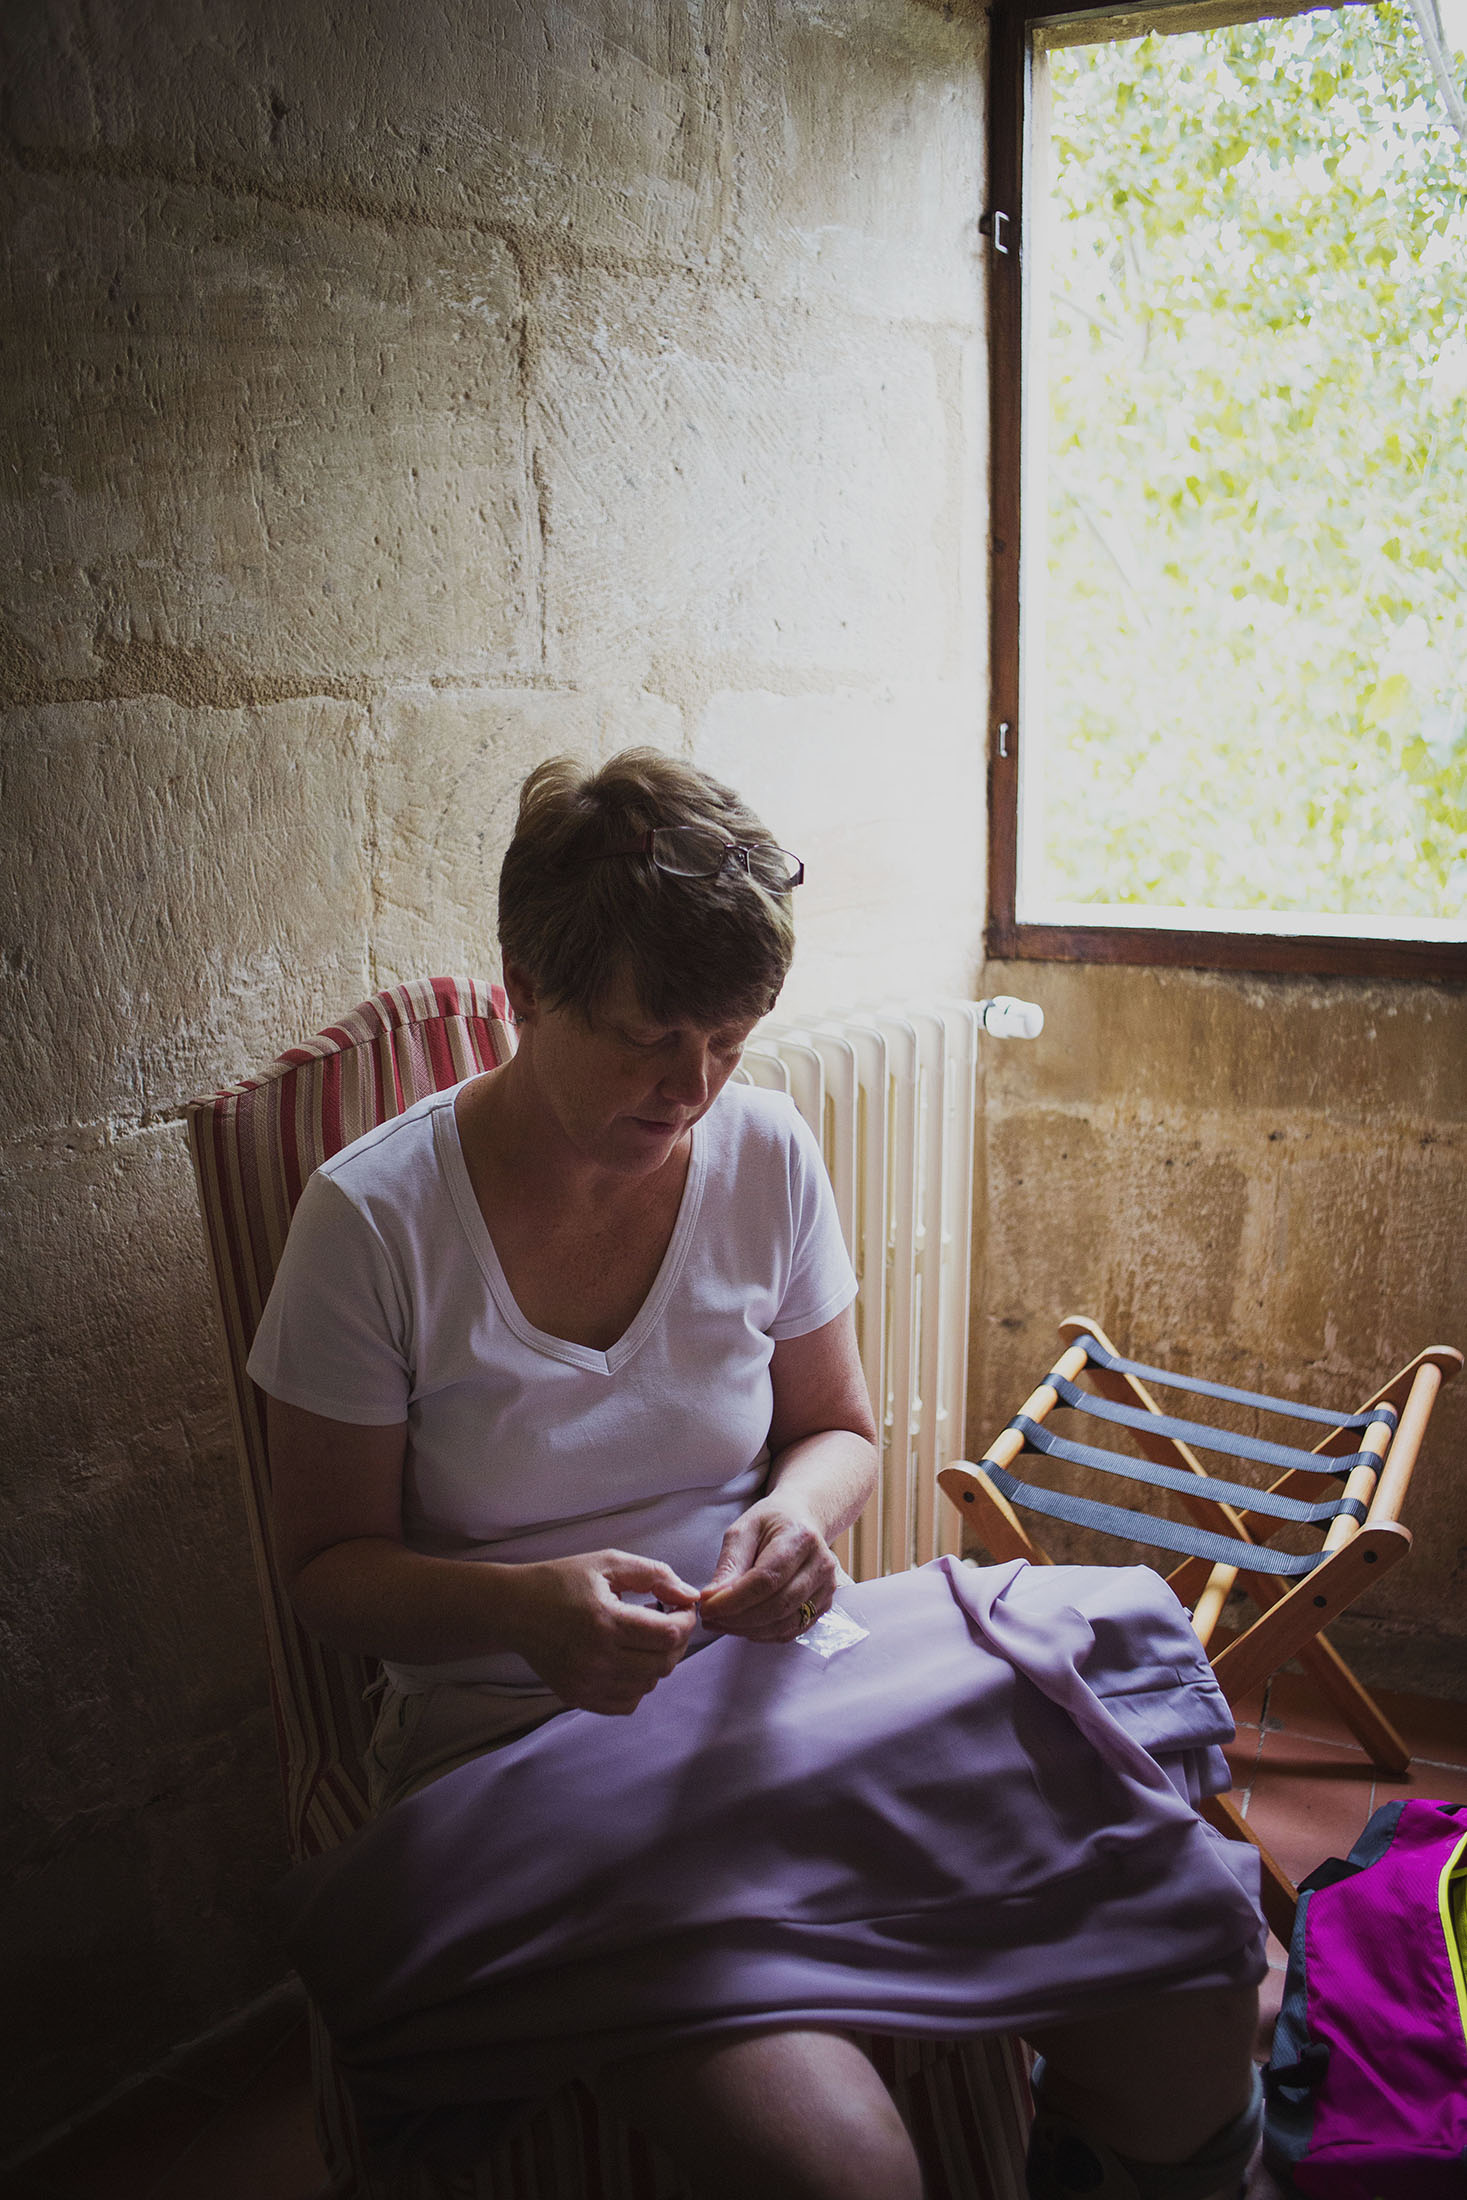 sewing wedding dress chateaux des ducs de joyeuses france destination wedding photography